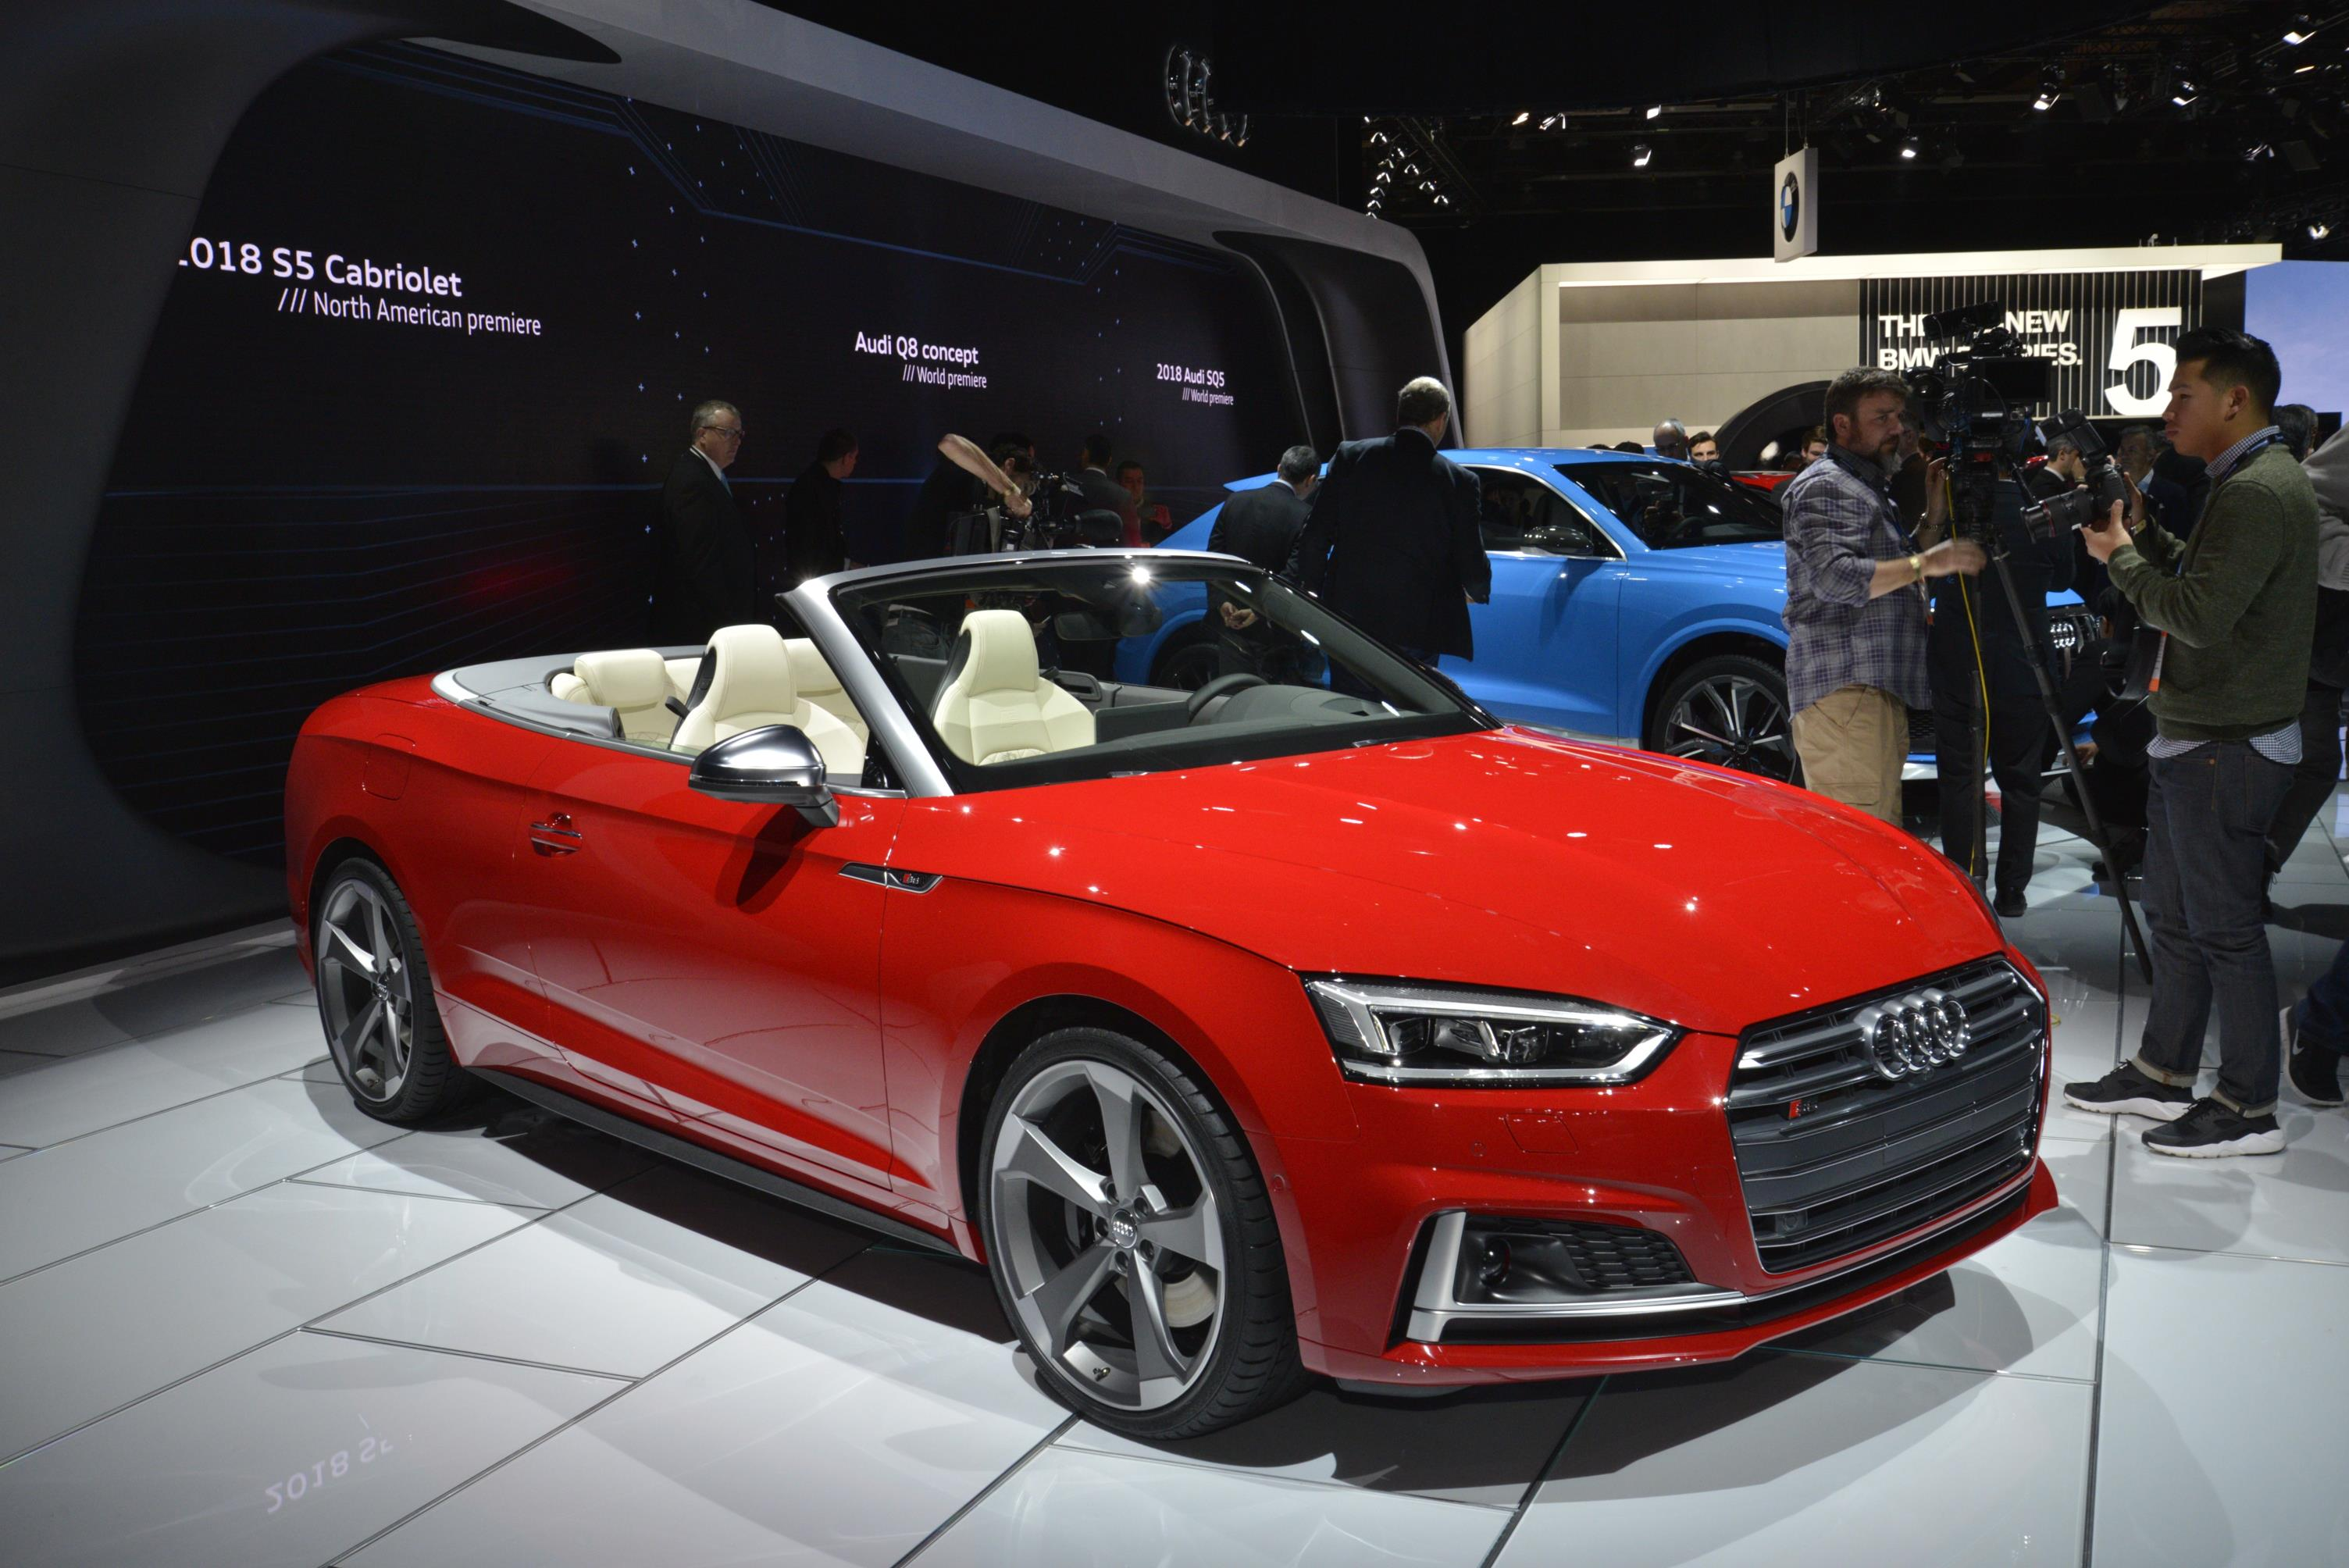 2018 Audi S5 Cabriolet Has One Of The Best Interiors In Detroit